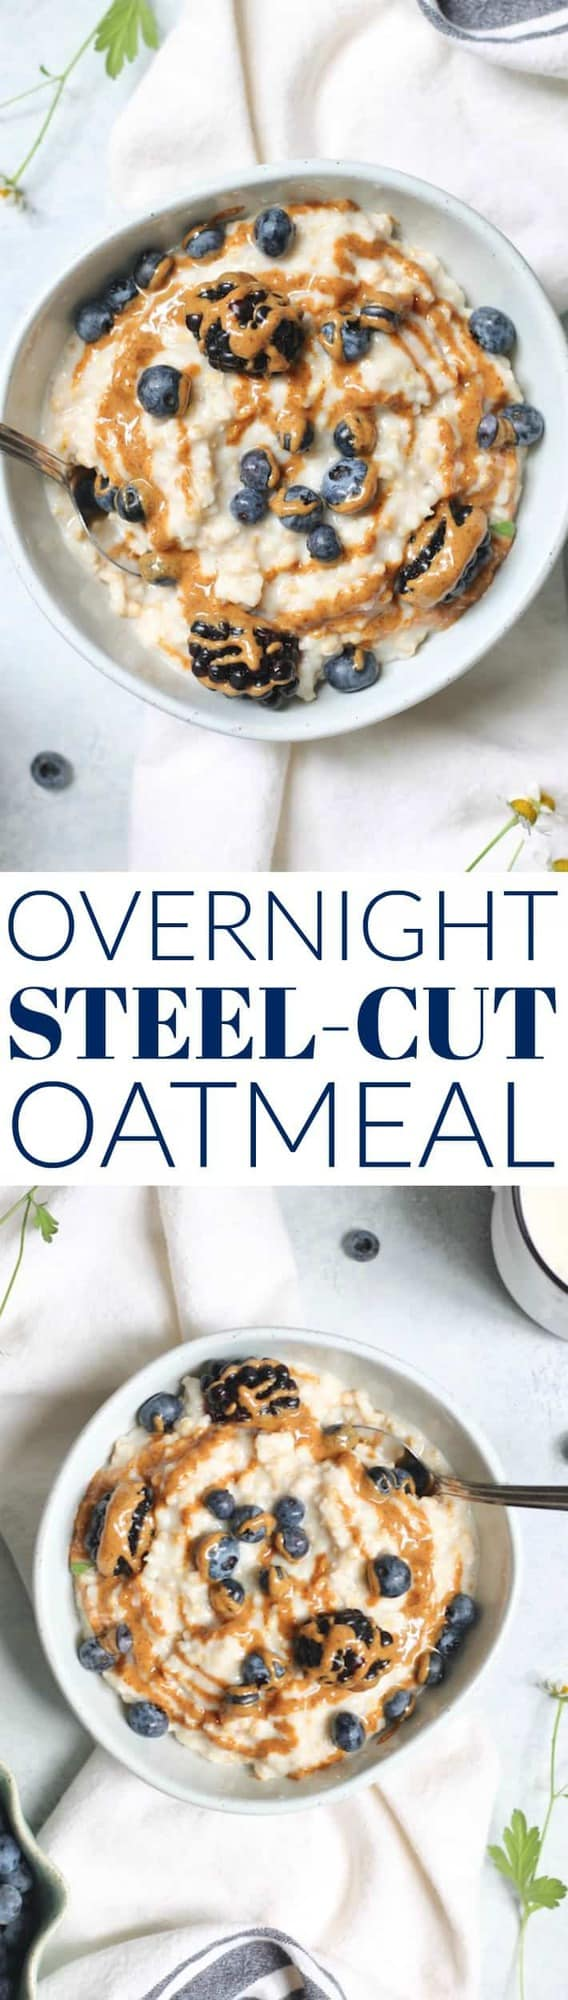 These Overnight Steel Cut Oatmeal are the easiest, foolproof way to enjoy steel cut oats! Spend 5 minutes preparing it at night and wake up to perfectly cooked oatmeal in the morning.